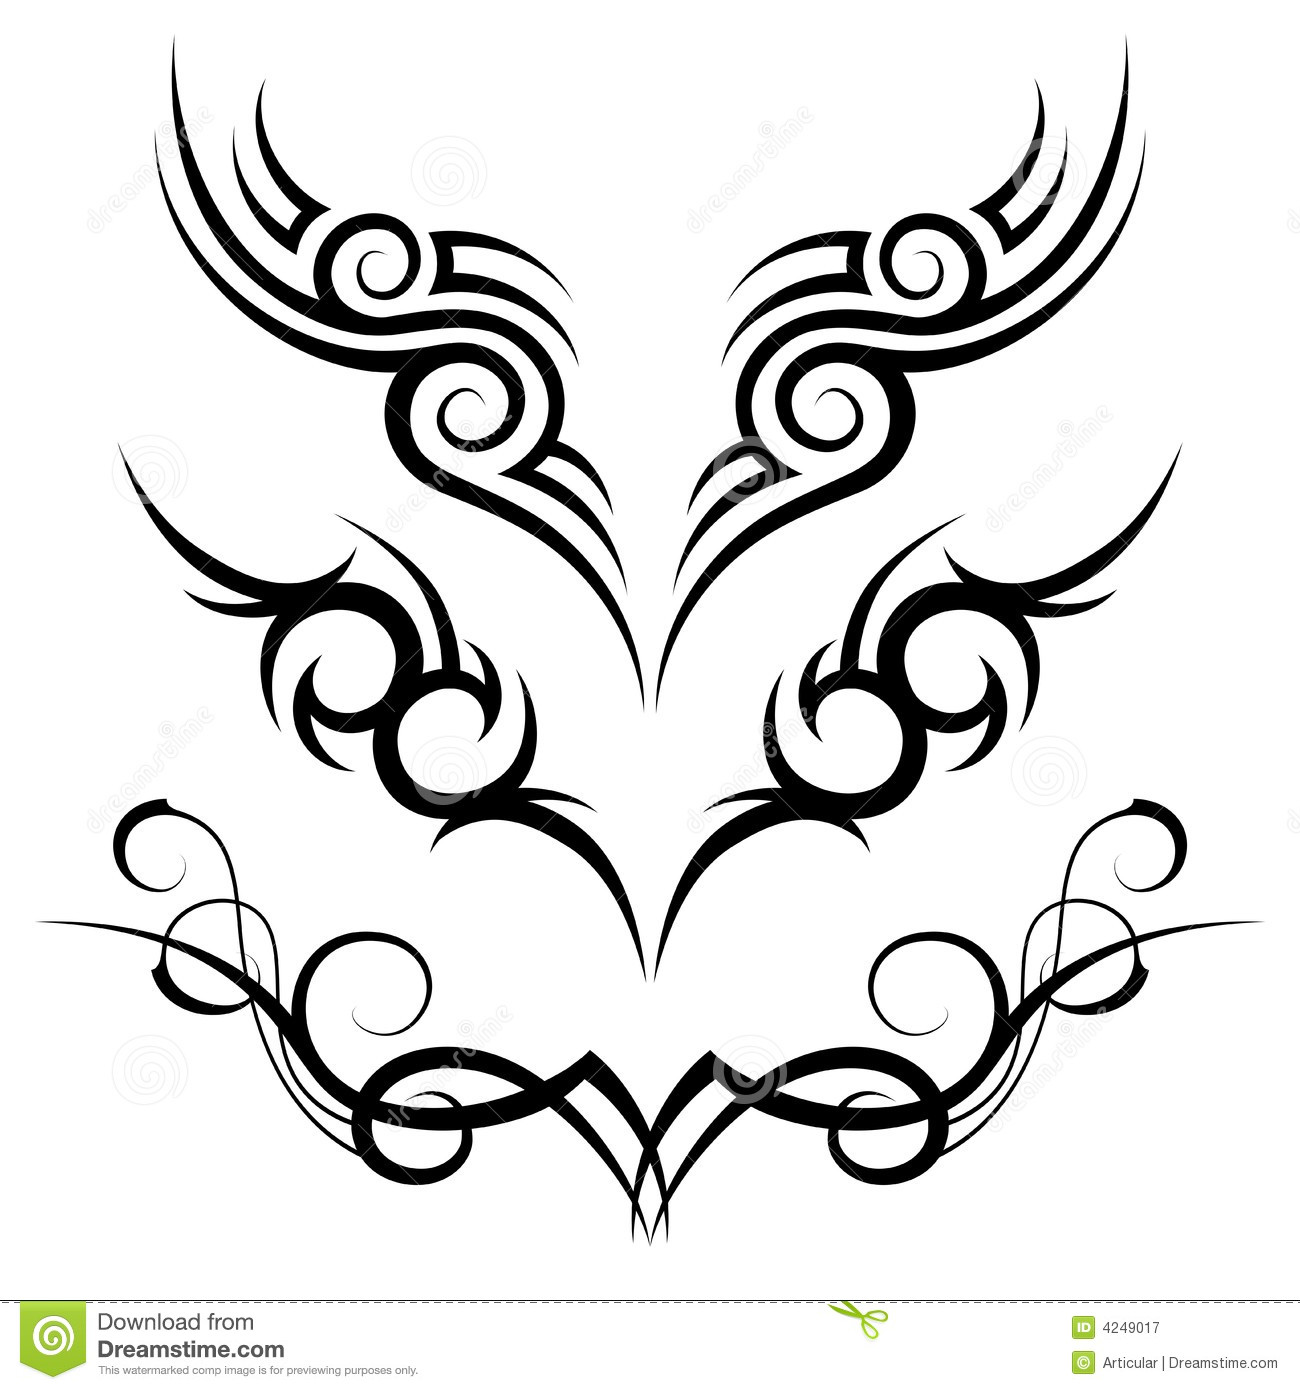 free-download-tatuajes-mariposas